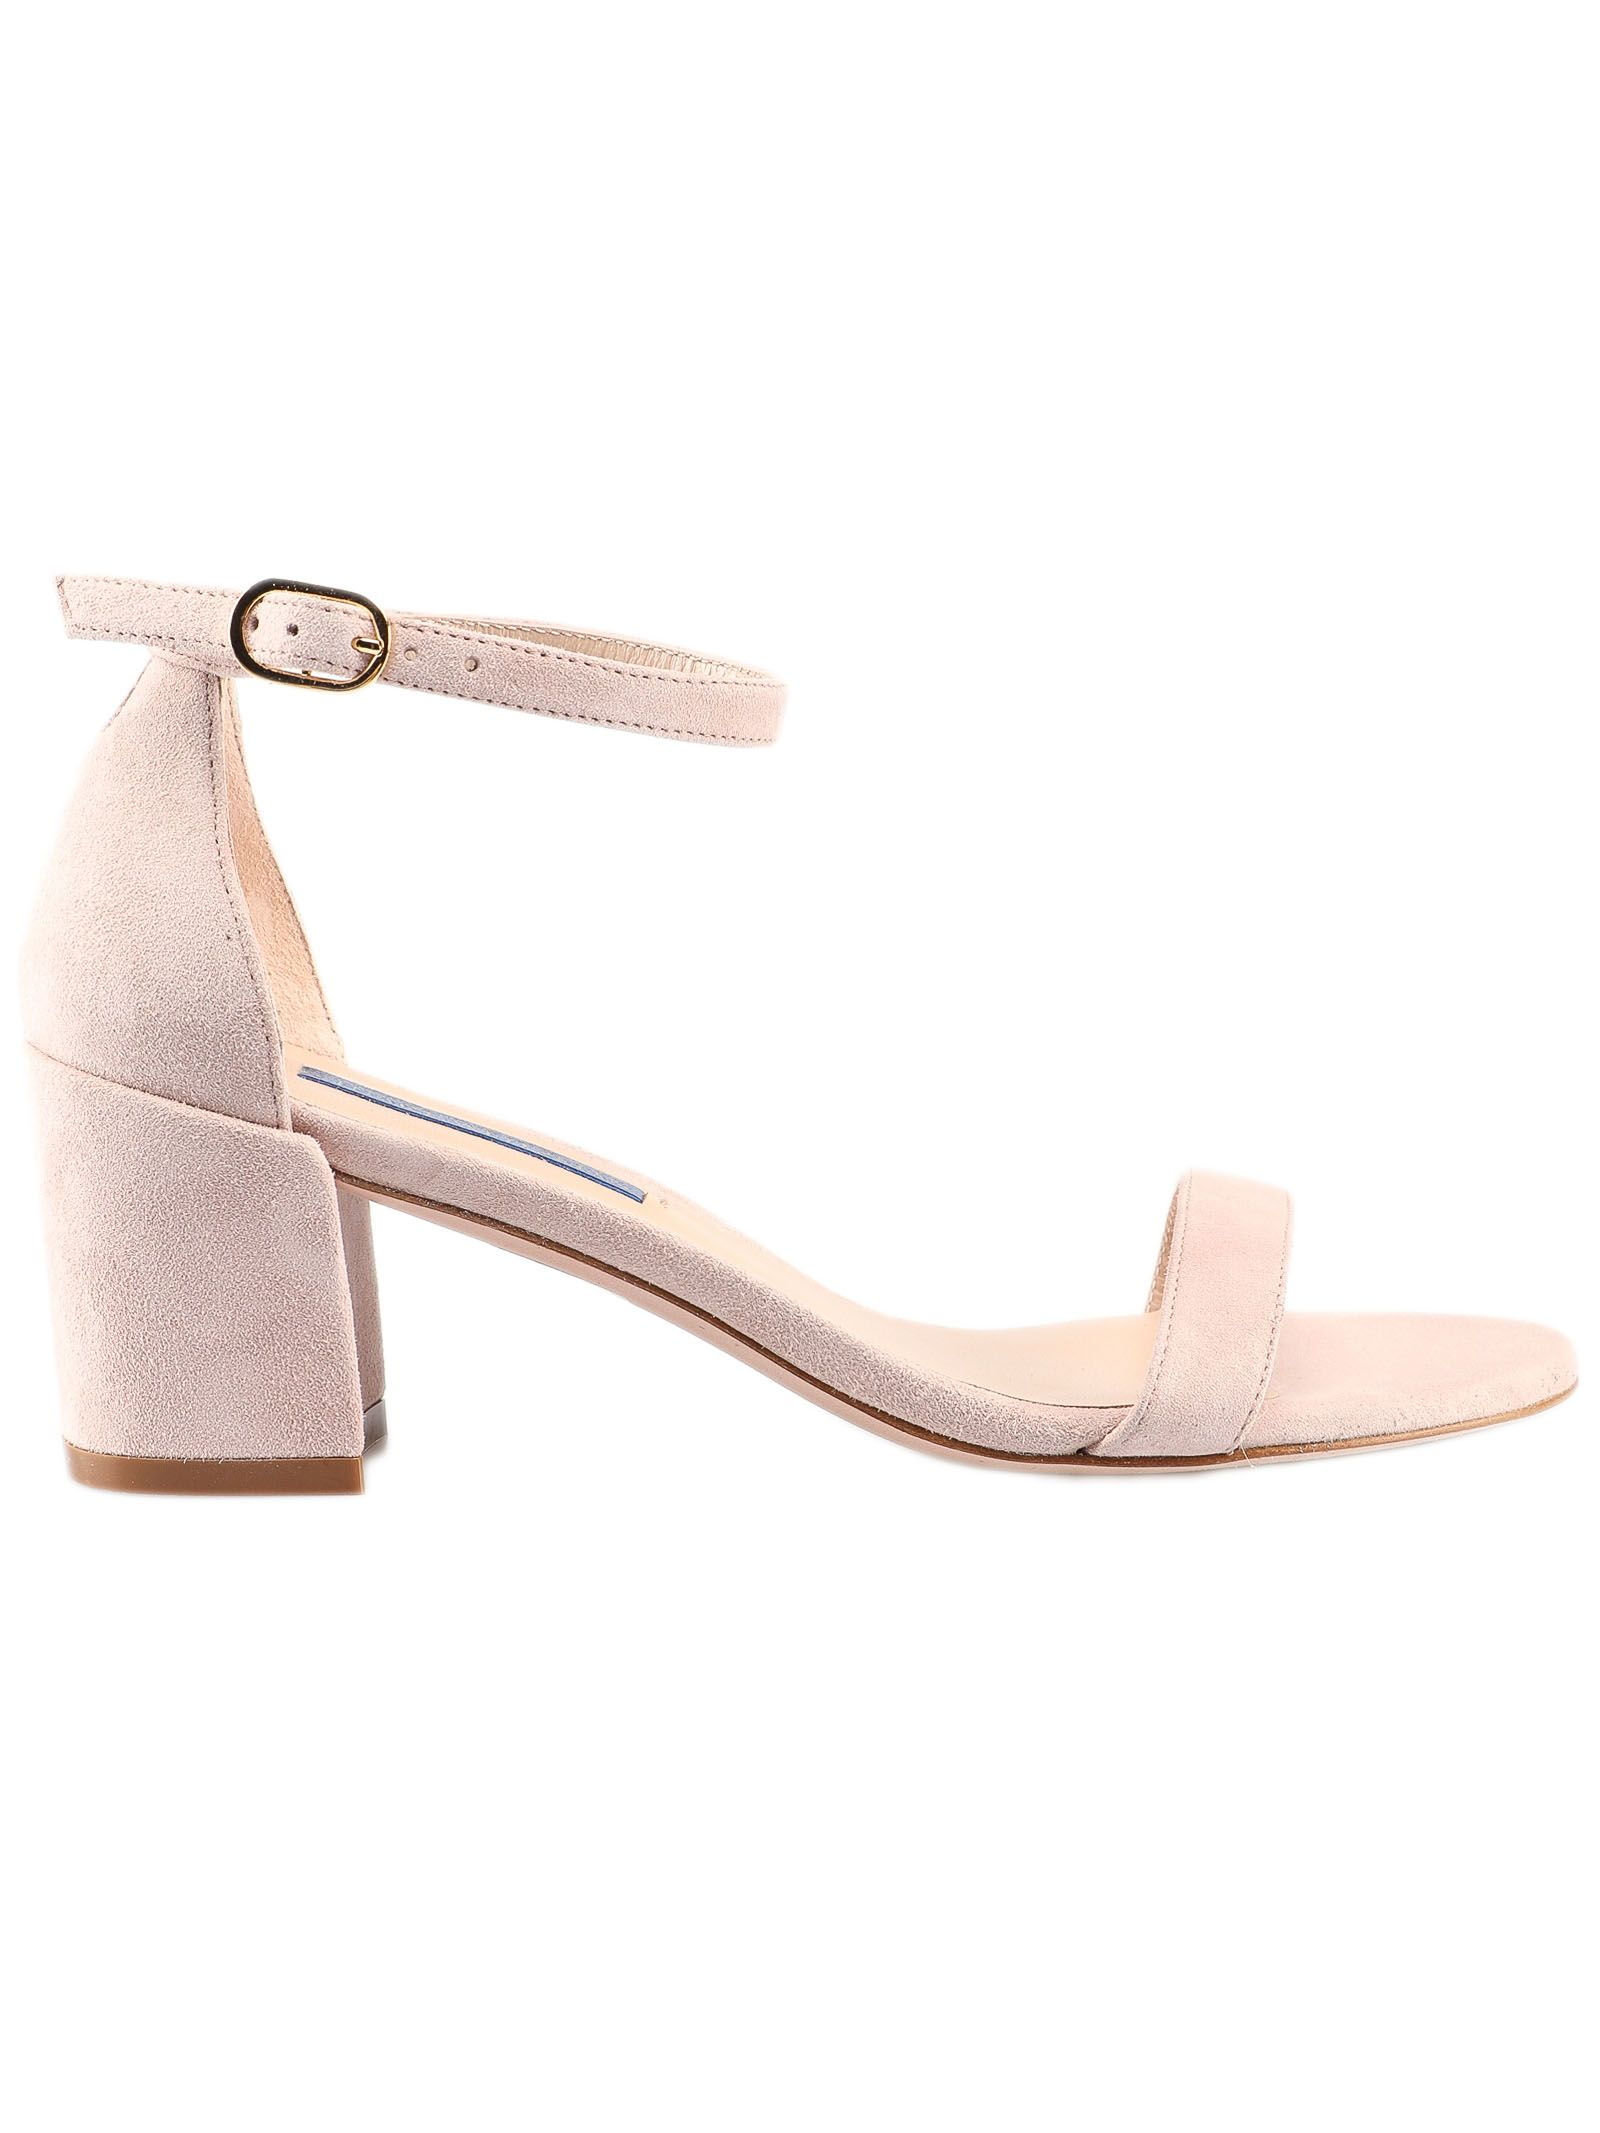 Stuart Weitzman Simple Ankle Strapped Sandals